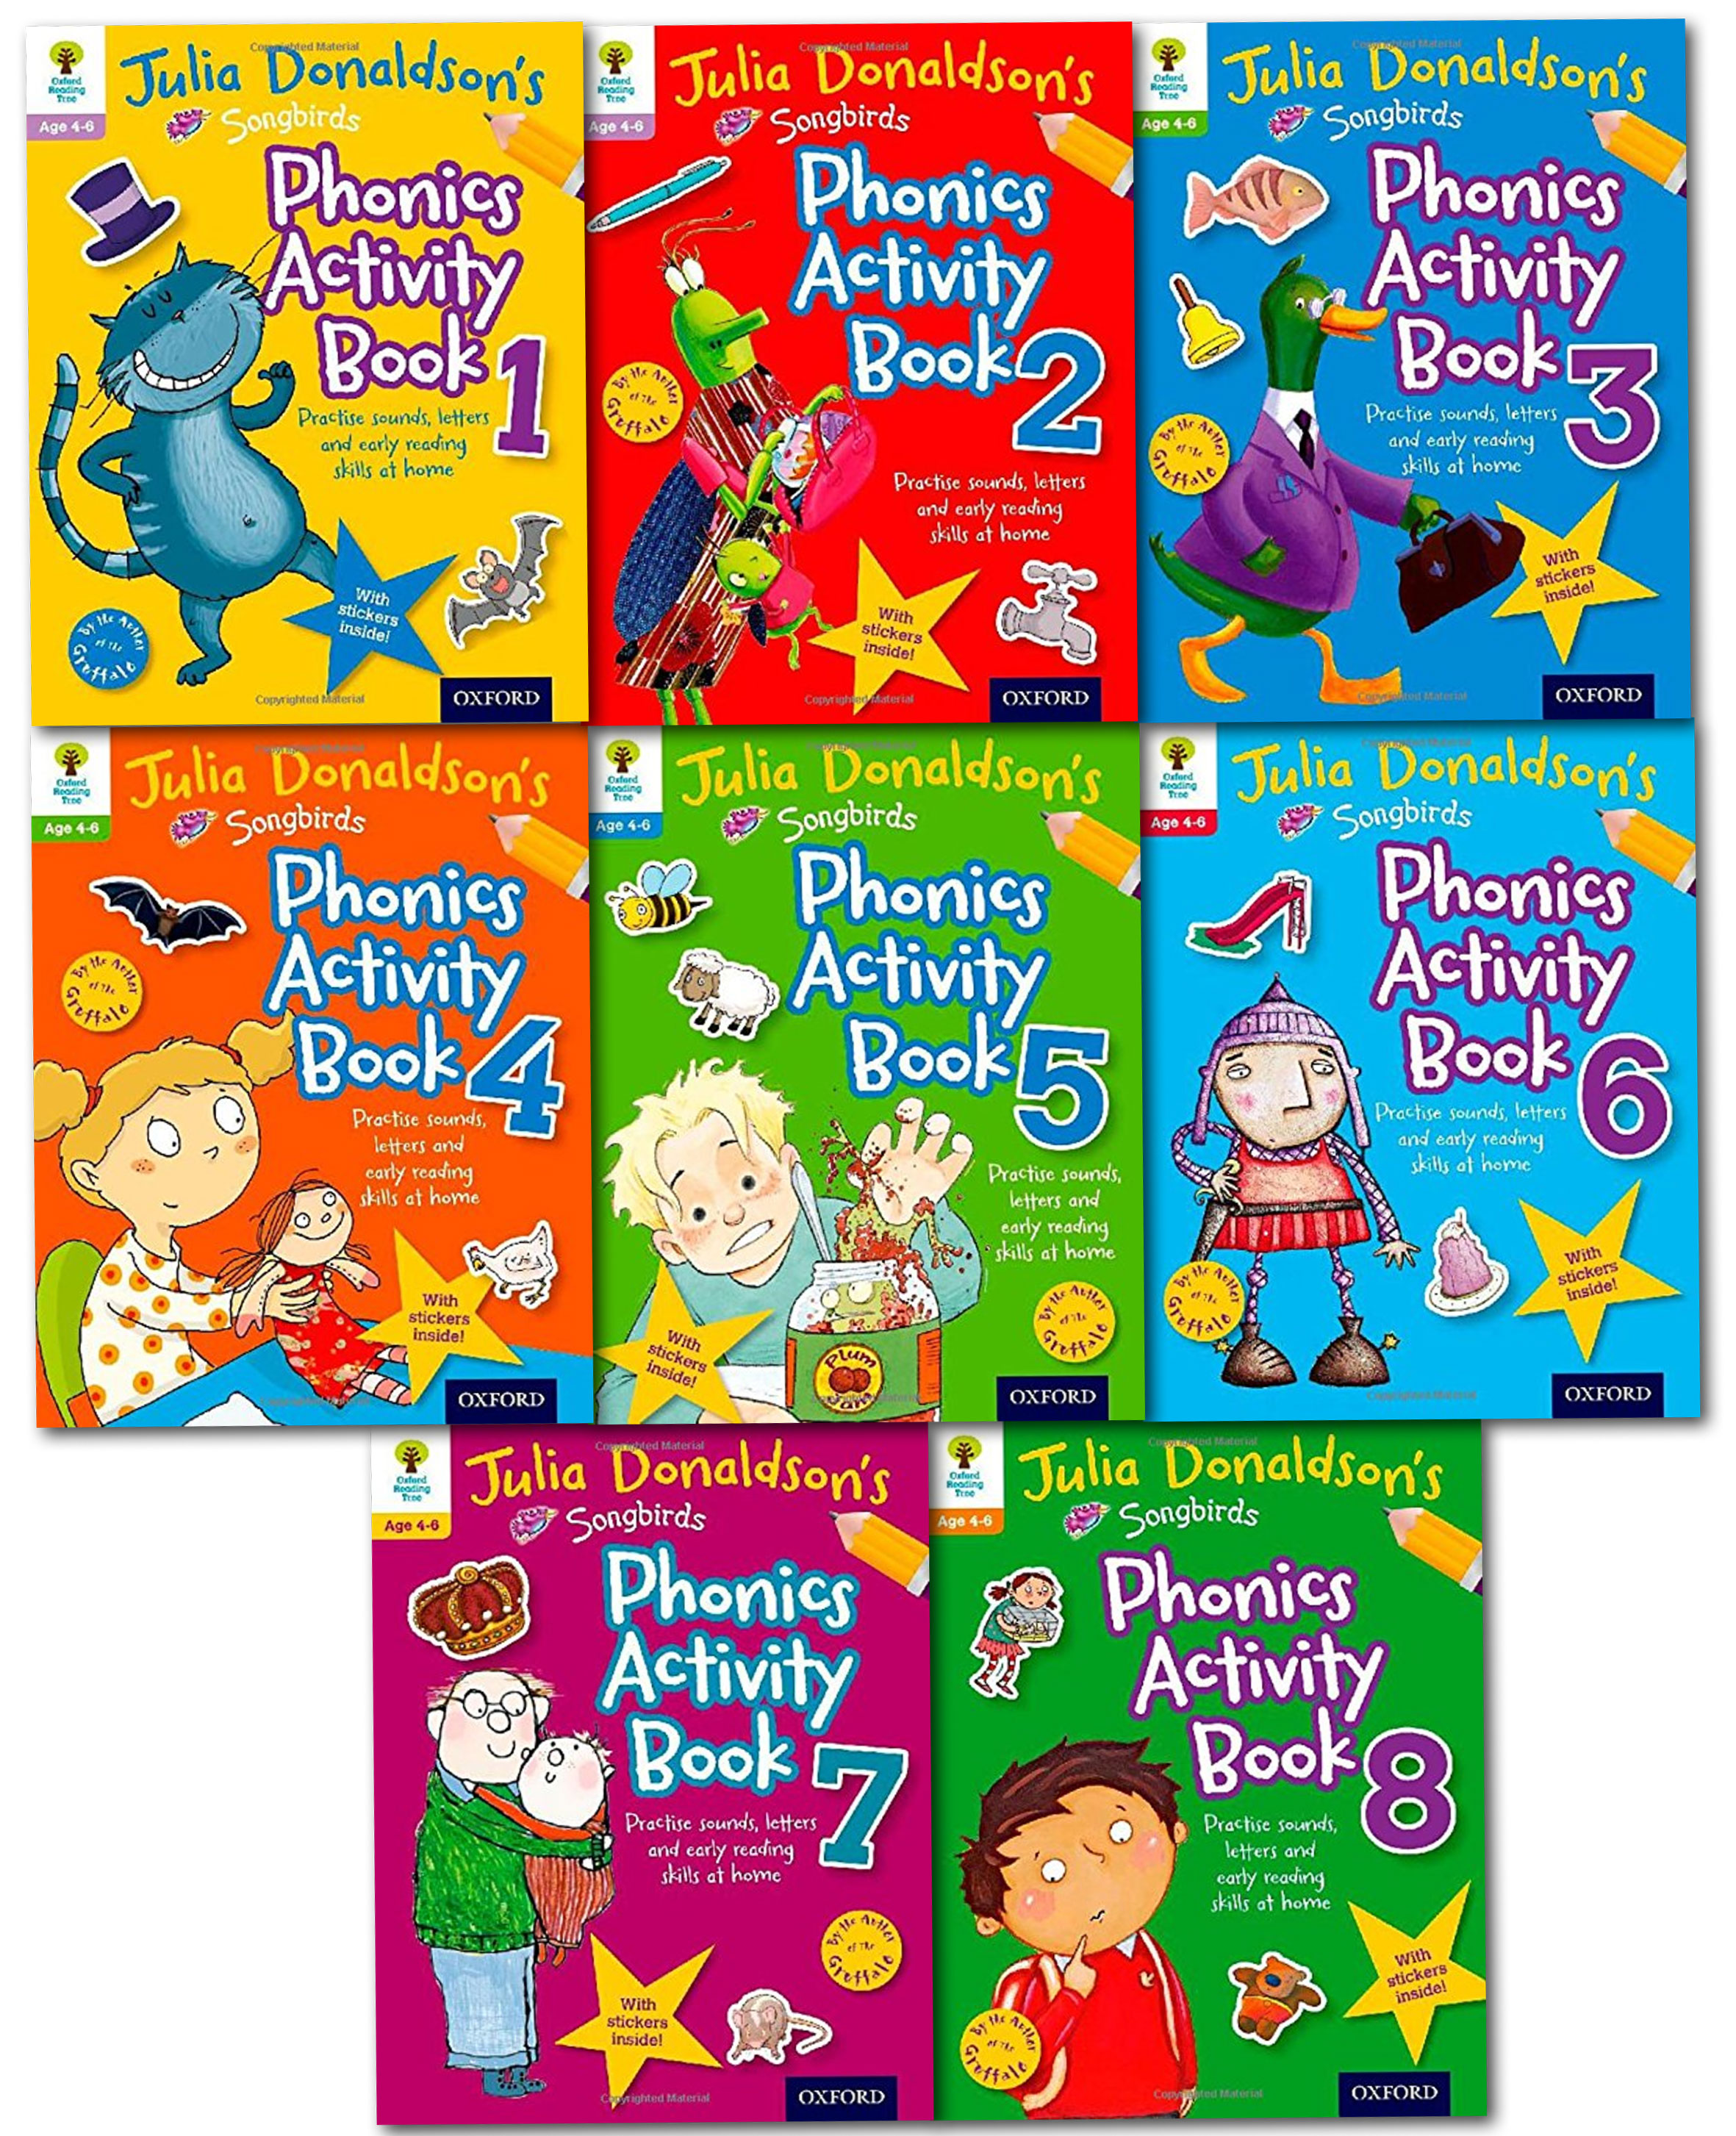 Early Literacy: The Skill of Learning the Alphabet